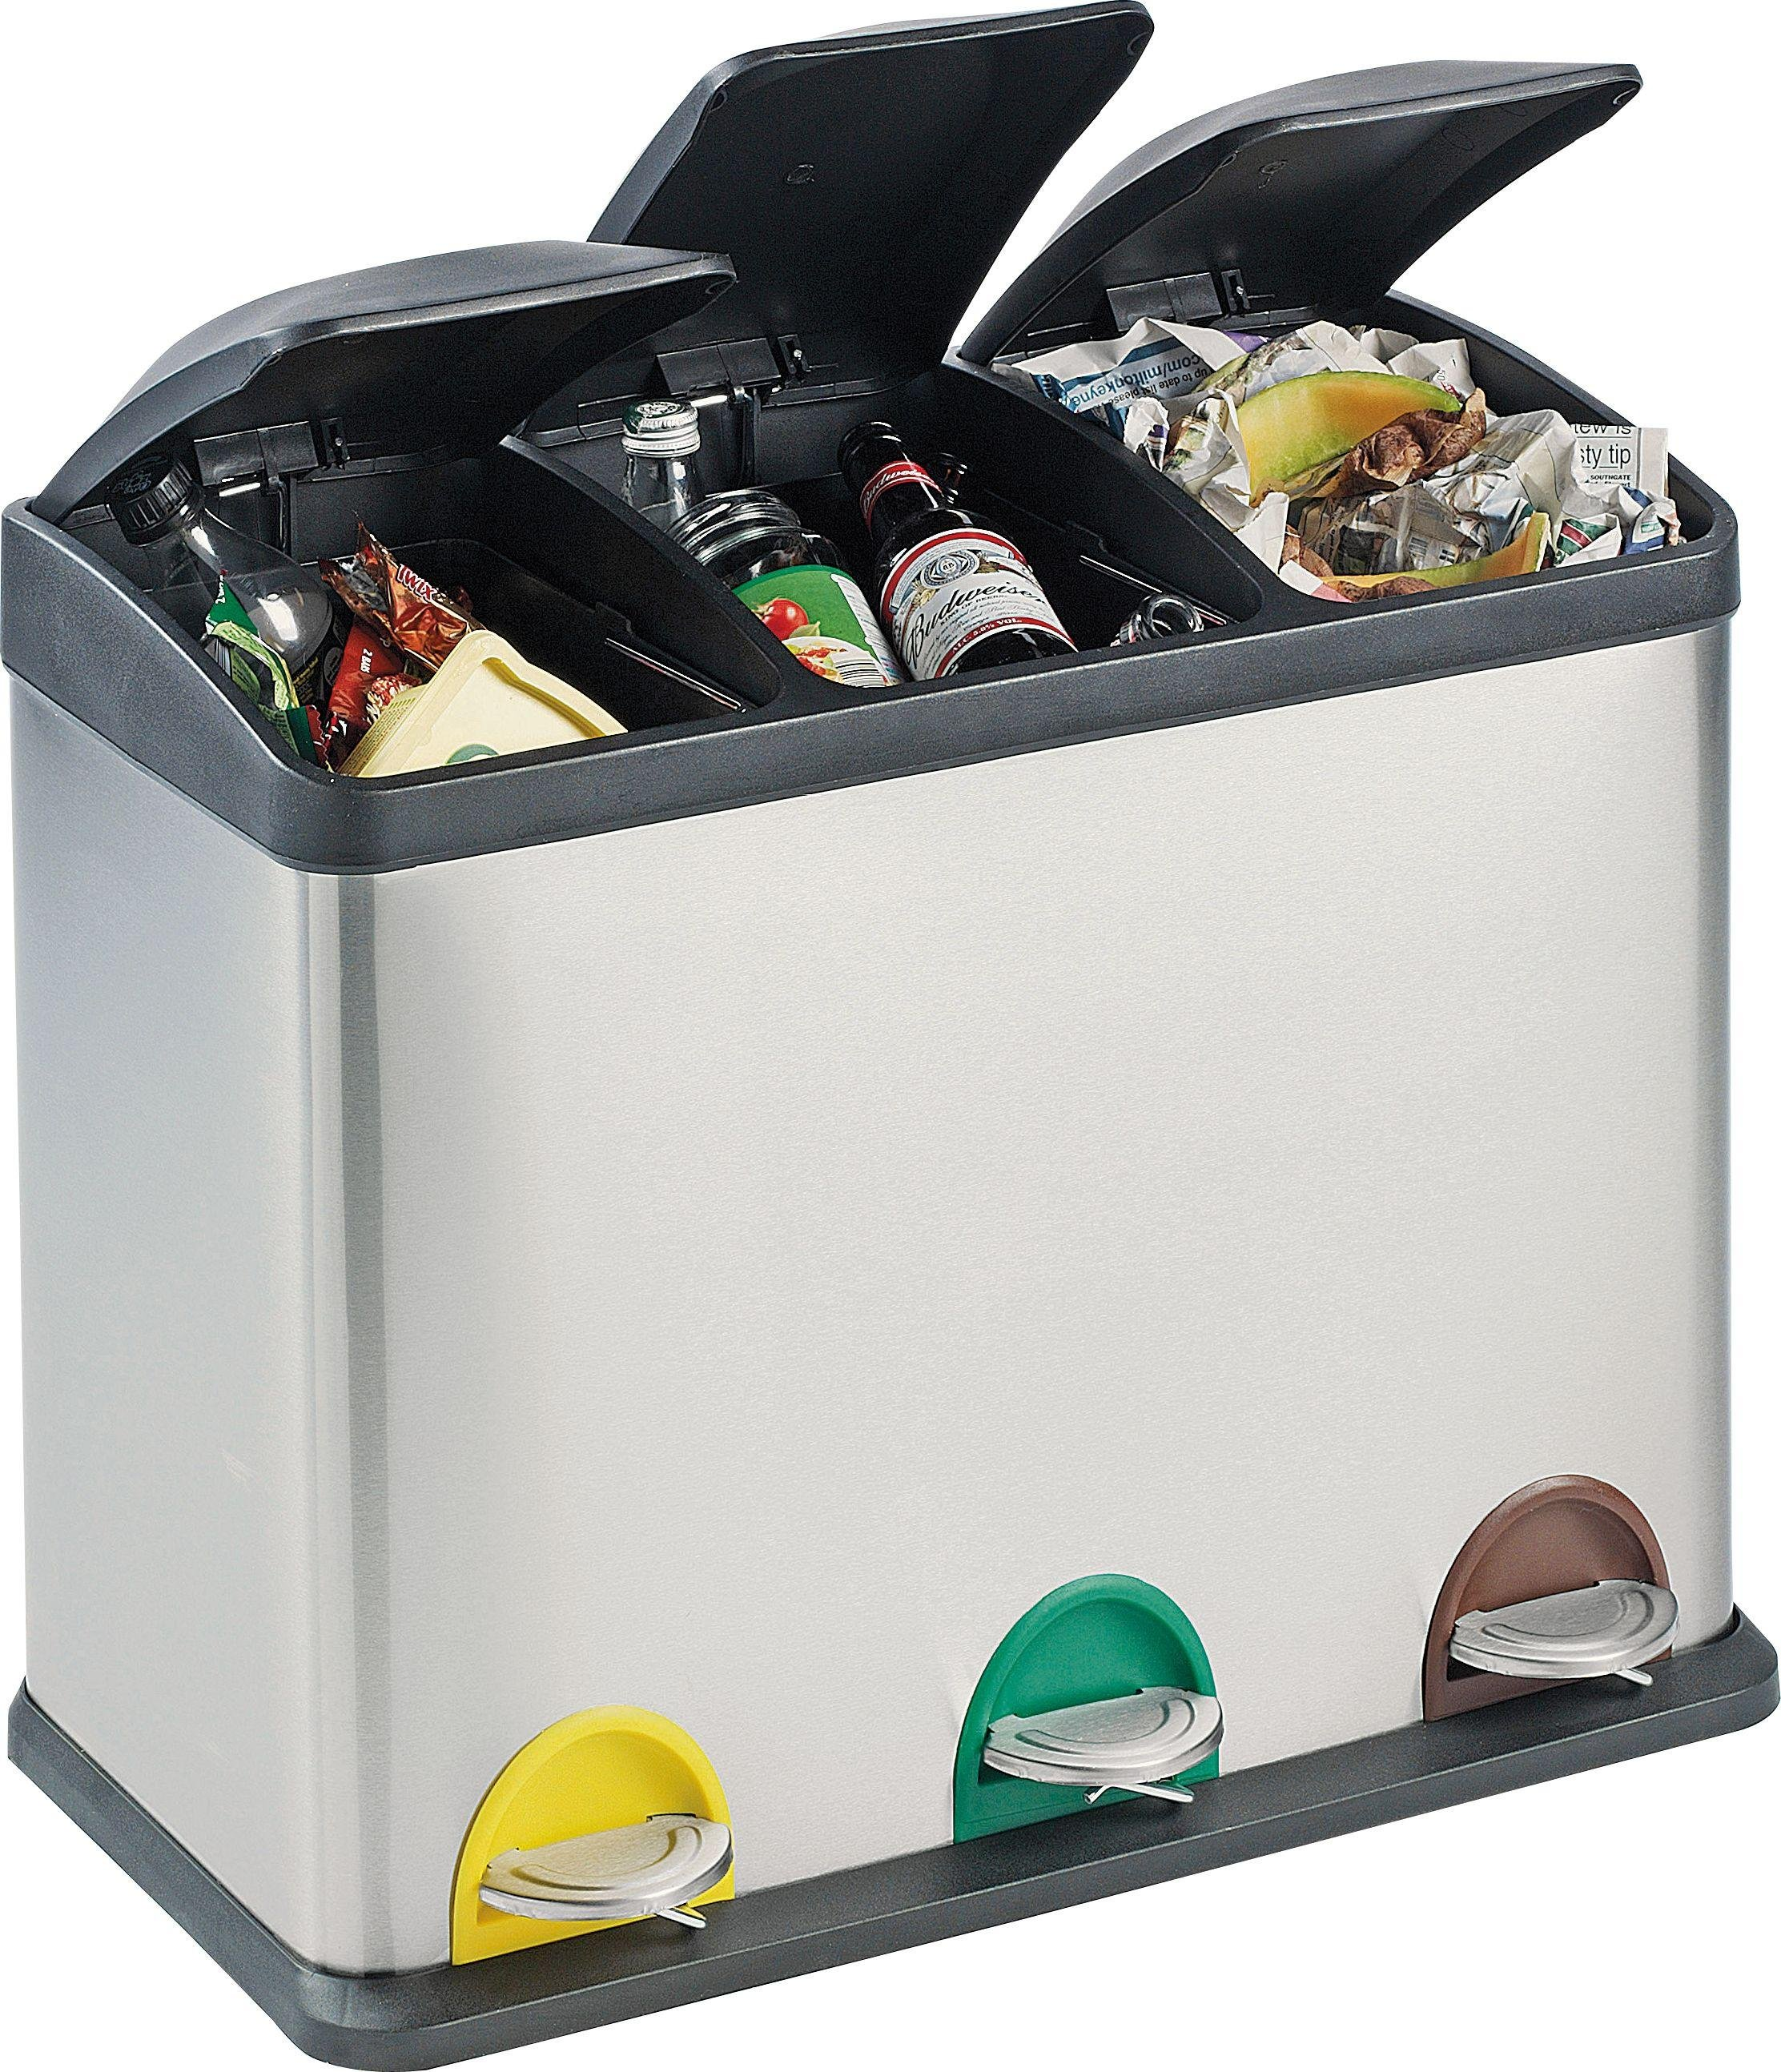 buy home 45 litre recycling pedal bin with 3 compartments at argos